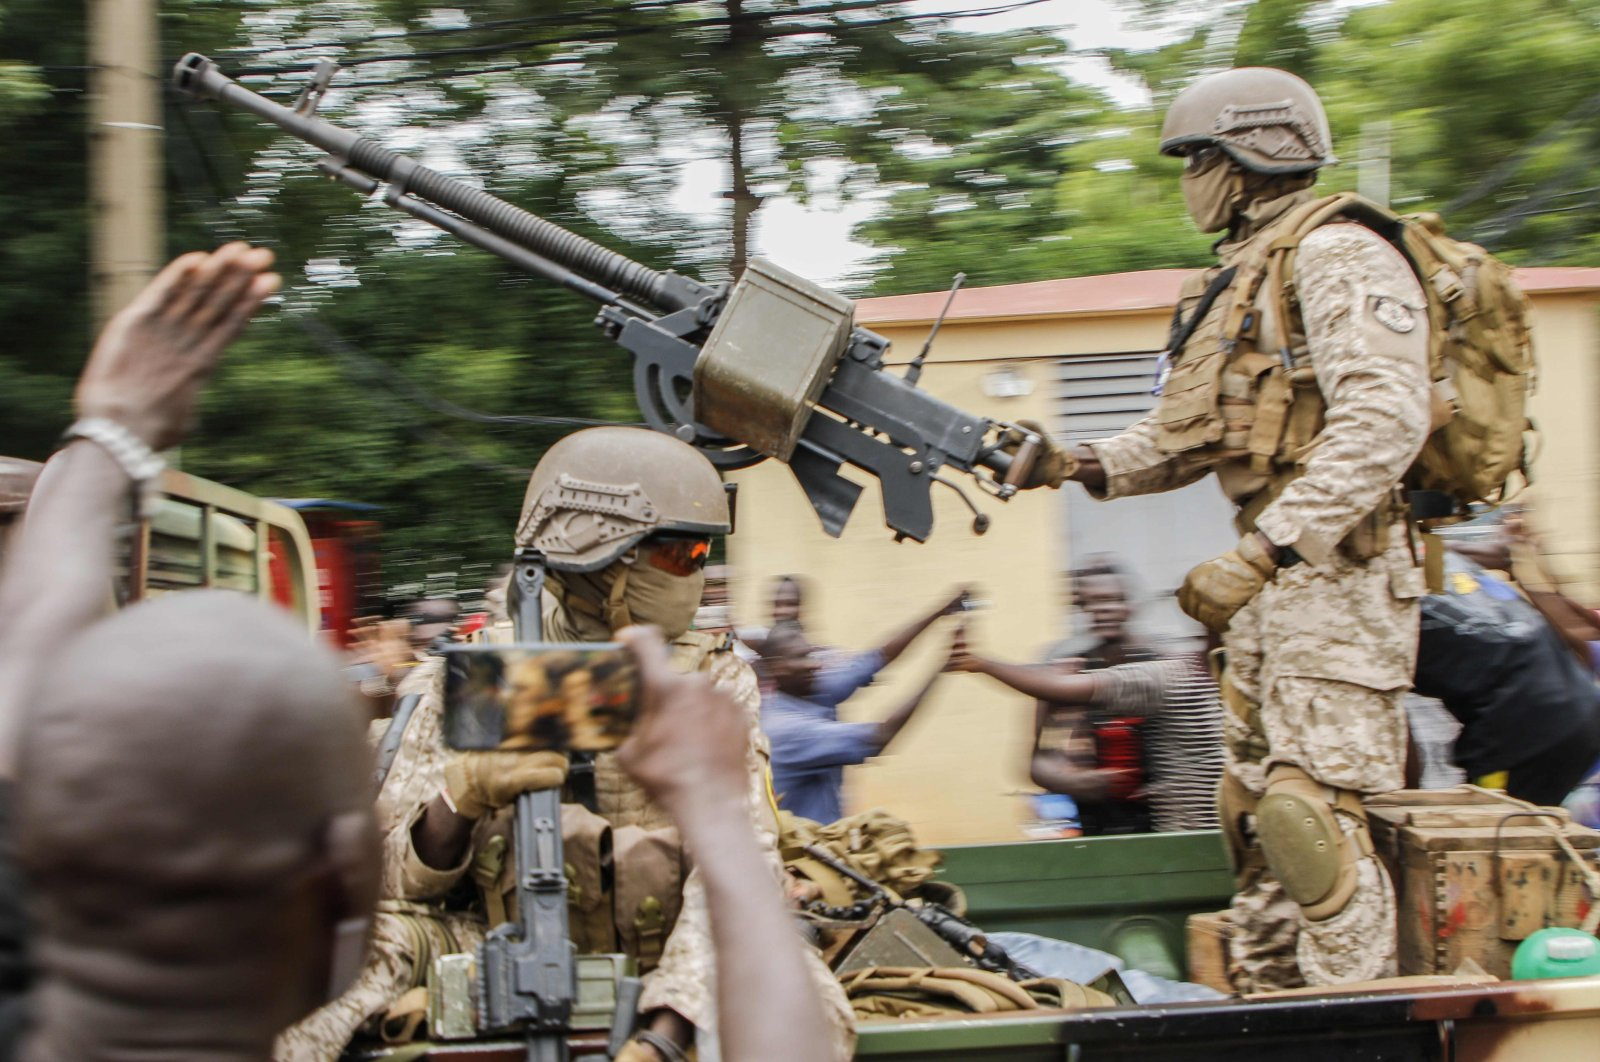 Malian soldiers parade as they arrive by military vehicle at Independence Square in Bamako, Mali, after rebel troops seized Malian President Ibrahim Boubacar Keita and Prime Minister Boubou Cisse in a dramatic escalation of a monthslong crisis, Aug. 18, 2020. (AFP Photo)